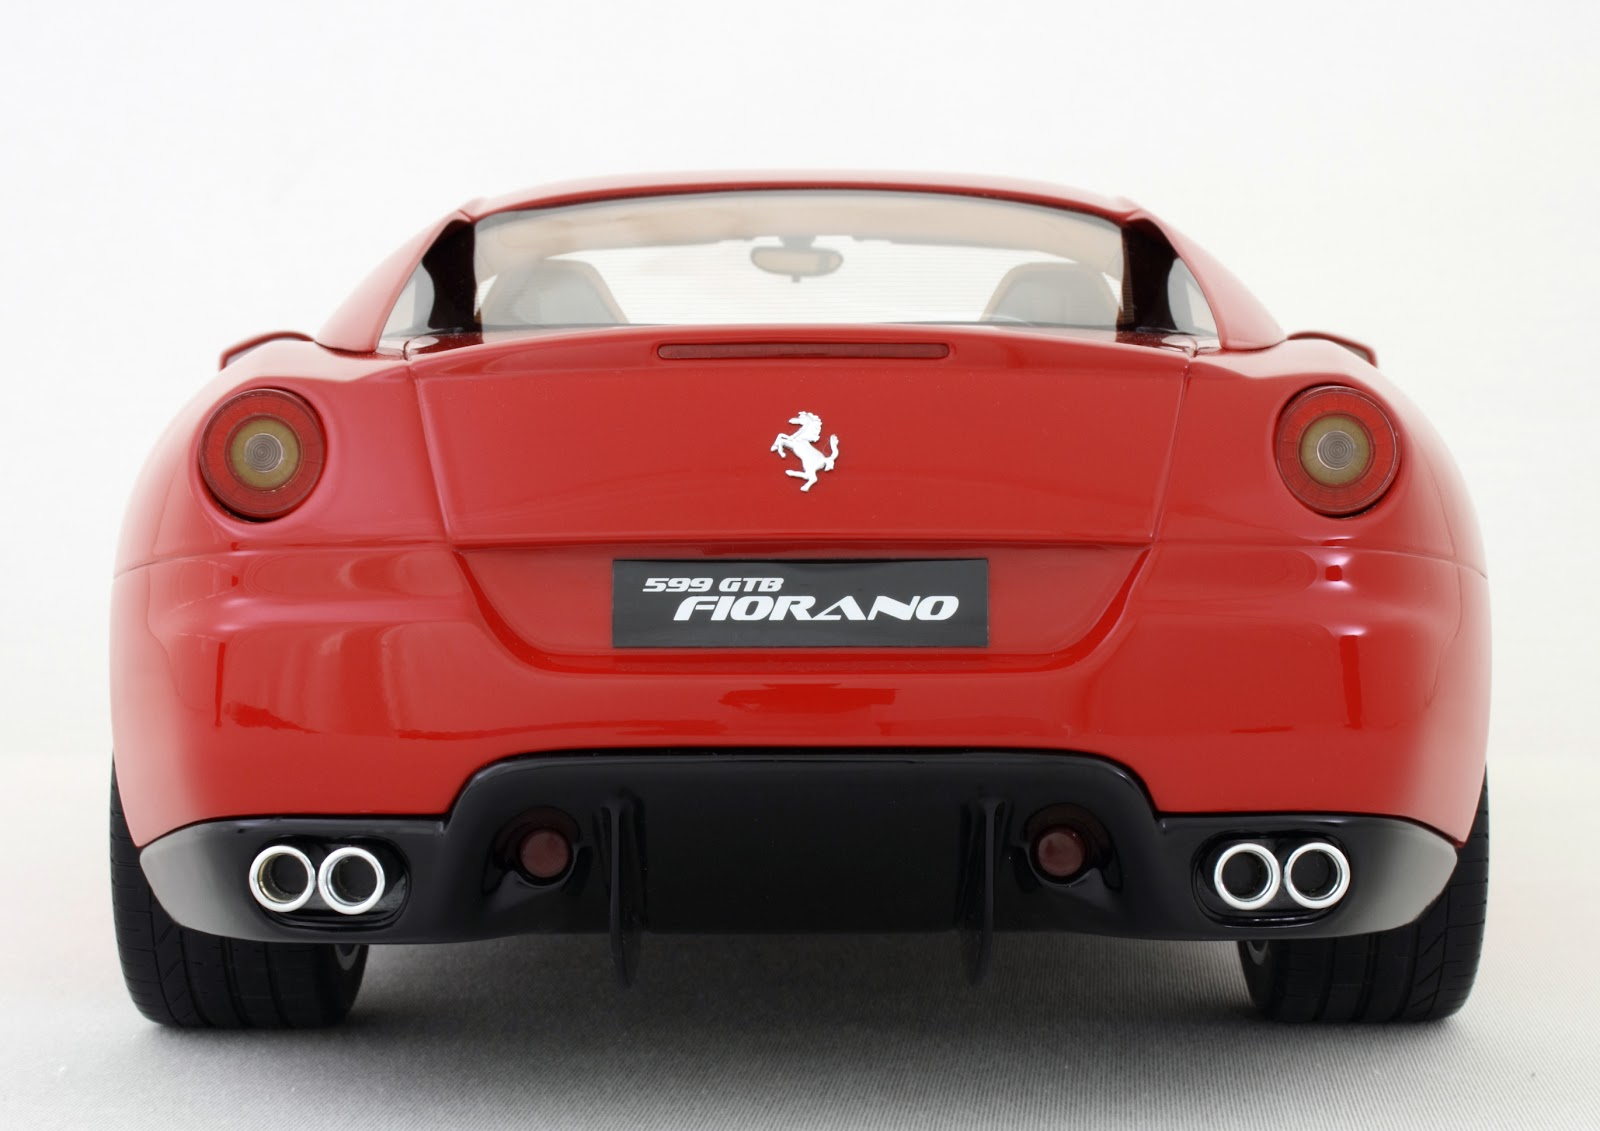 Ferrari 599 Gtb Fiorano Automoto Not Carrying The Gt4 Suspension Whether Disc Or Drum On Rear Following Signal Utilizes In Order To Develop Actual Overall Performance Associated With Its Monitor As Well Street Vehicles